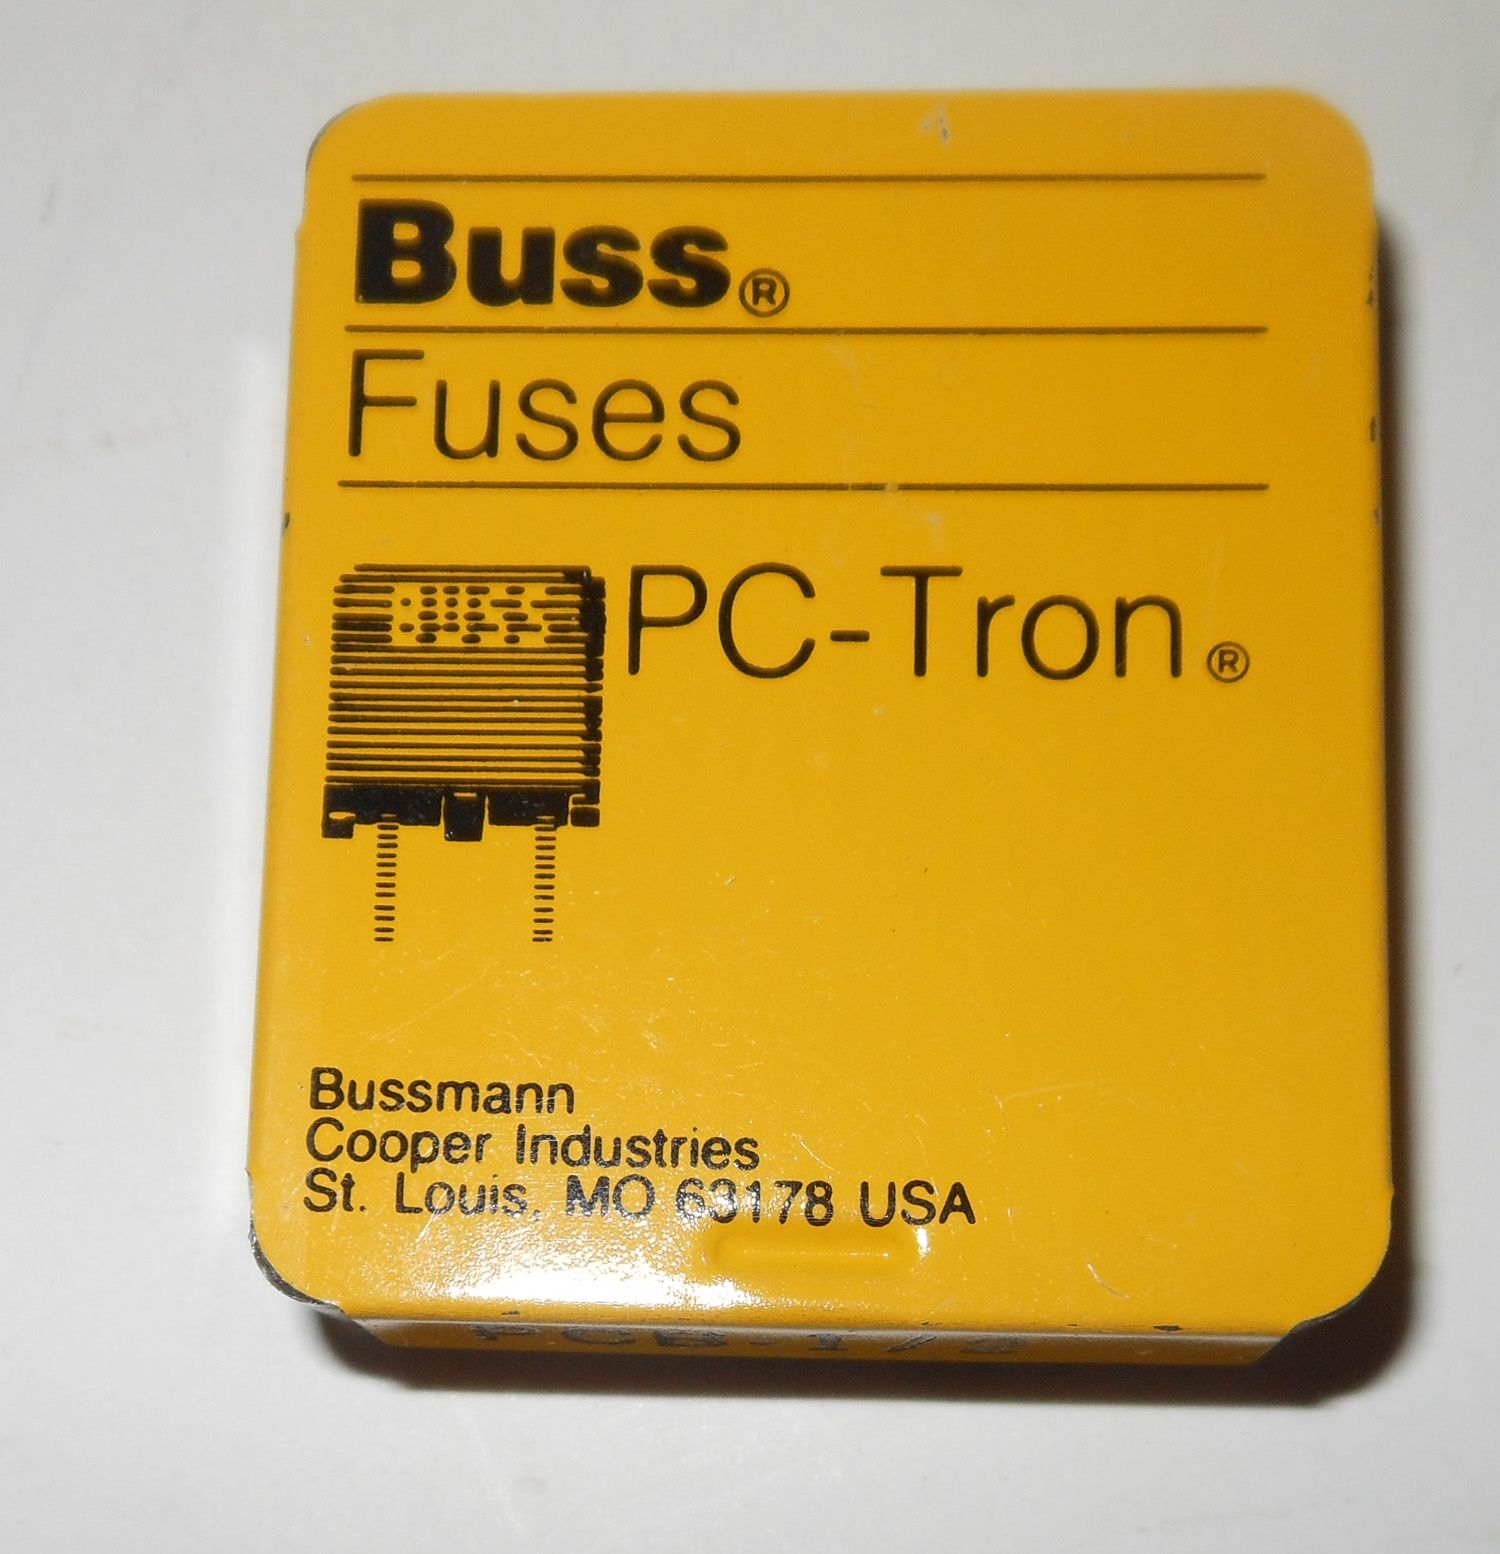 2a1462e841cab683604b63e2e0a03240 fuse new this is a box of fuses that is 1\